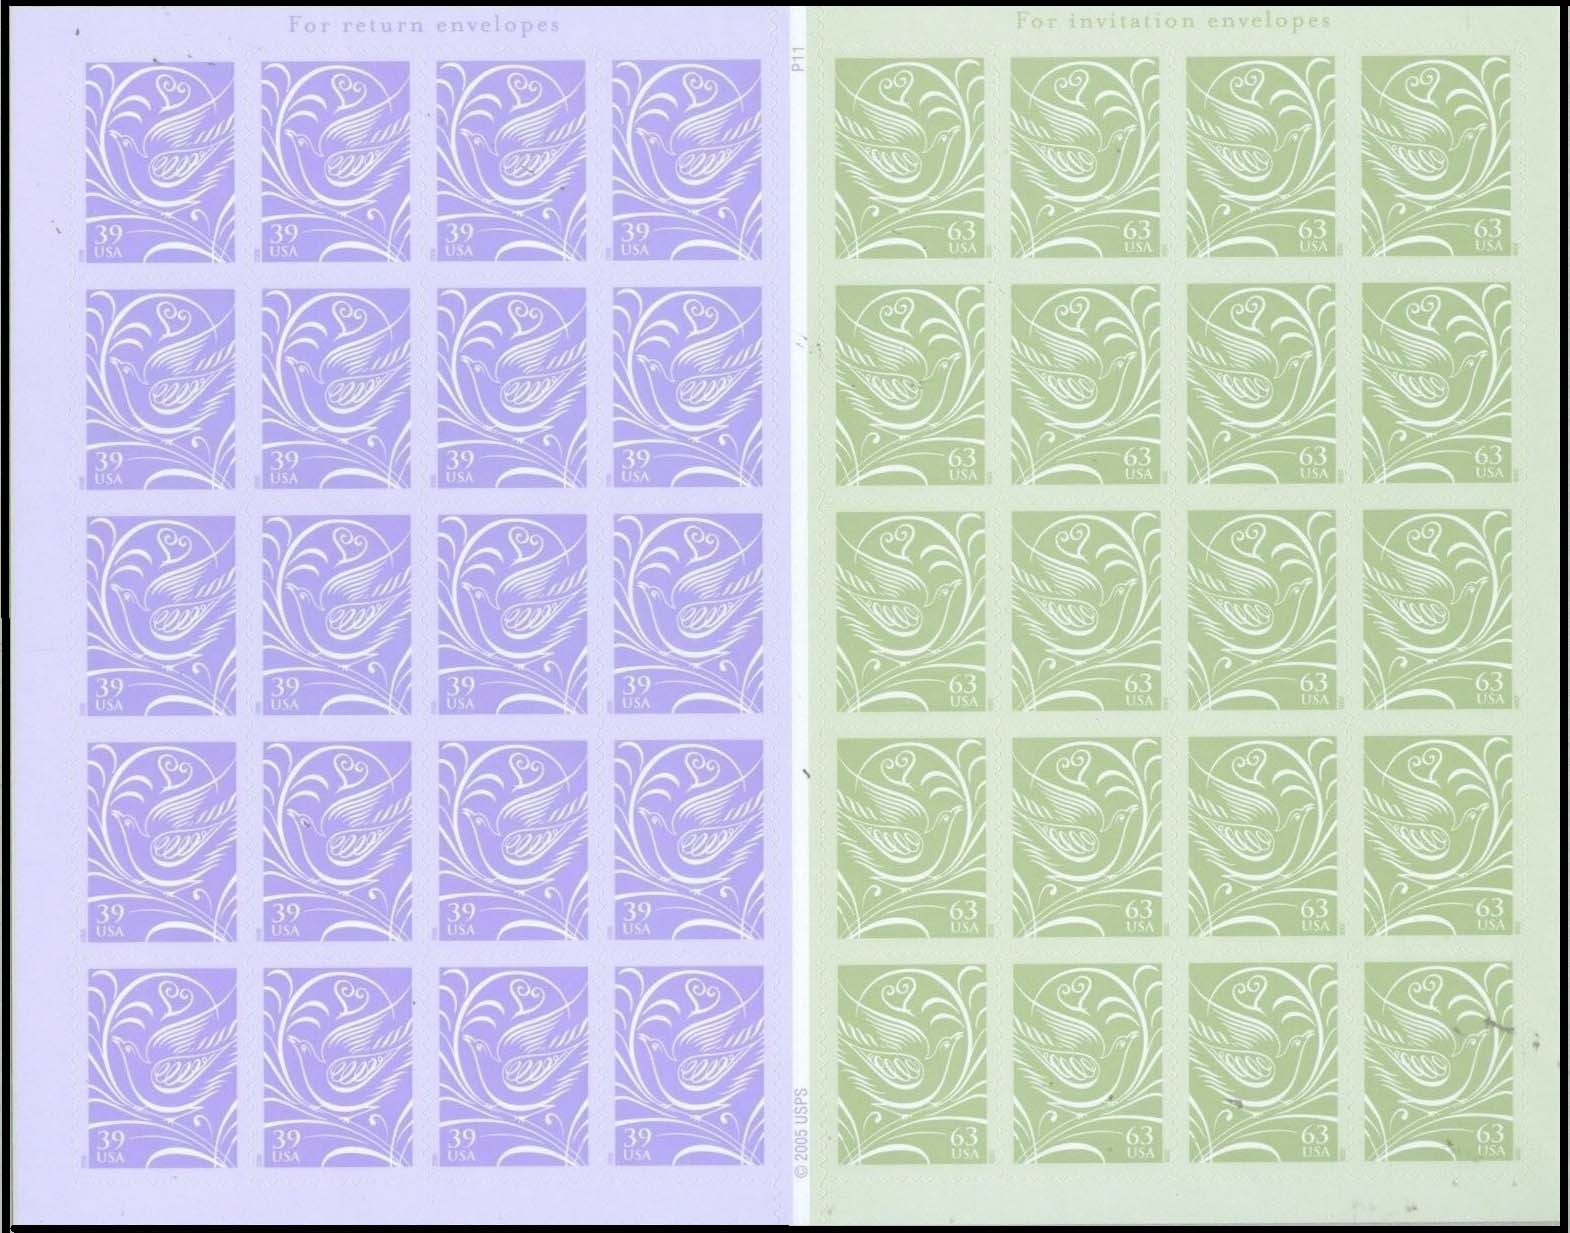 "Scott 3998-3999, Pane of 40 (39+63 cents) <p>Combo: Both denominations on one sheet <a href=""/images/USA-Scott-3998-3999-Sheet.jpg""><font color=green><b>View the image</a></b></font>"